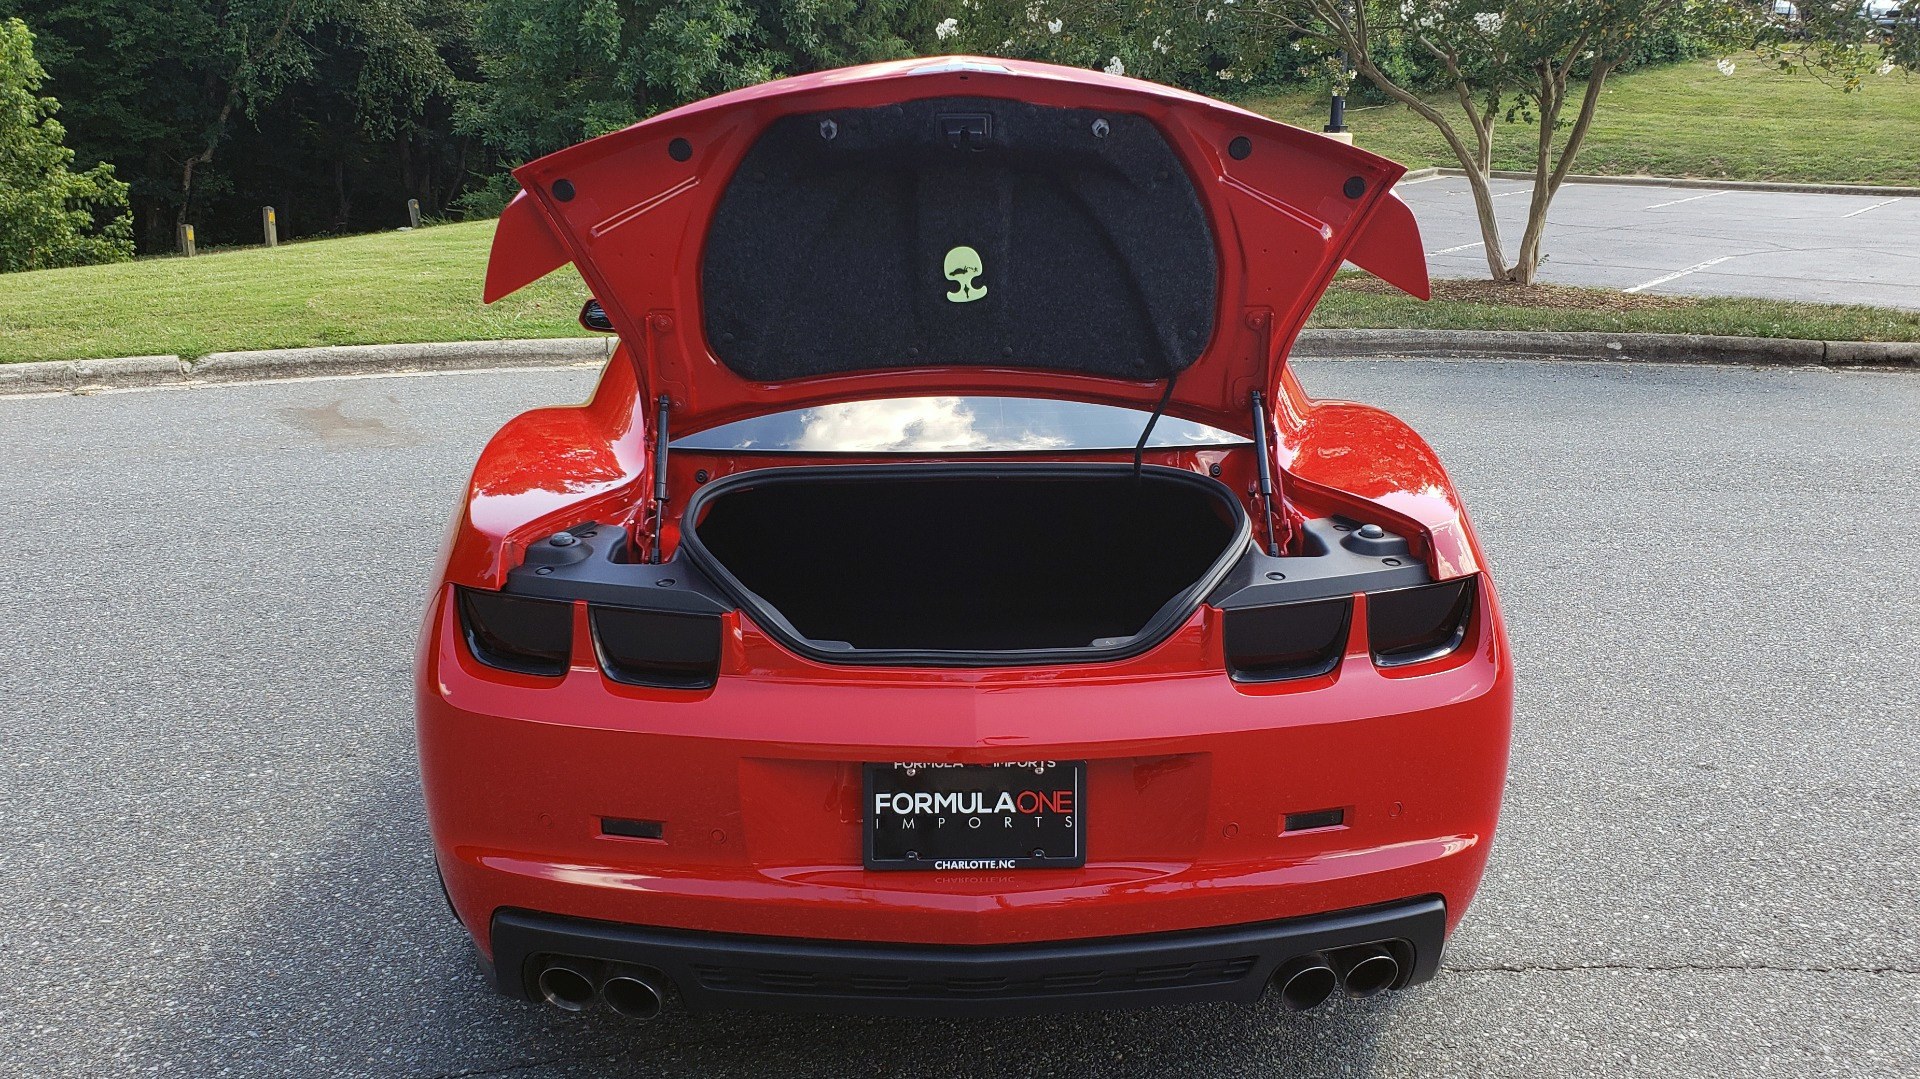 Used 2013 Chevrolet CAMARO ZL1 580HP / AUTO / NAV / BOSTON ACOUSTIC SND / REARVIEW for sale $40,995 at Formula Imports in Charlotte NC 28227 27